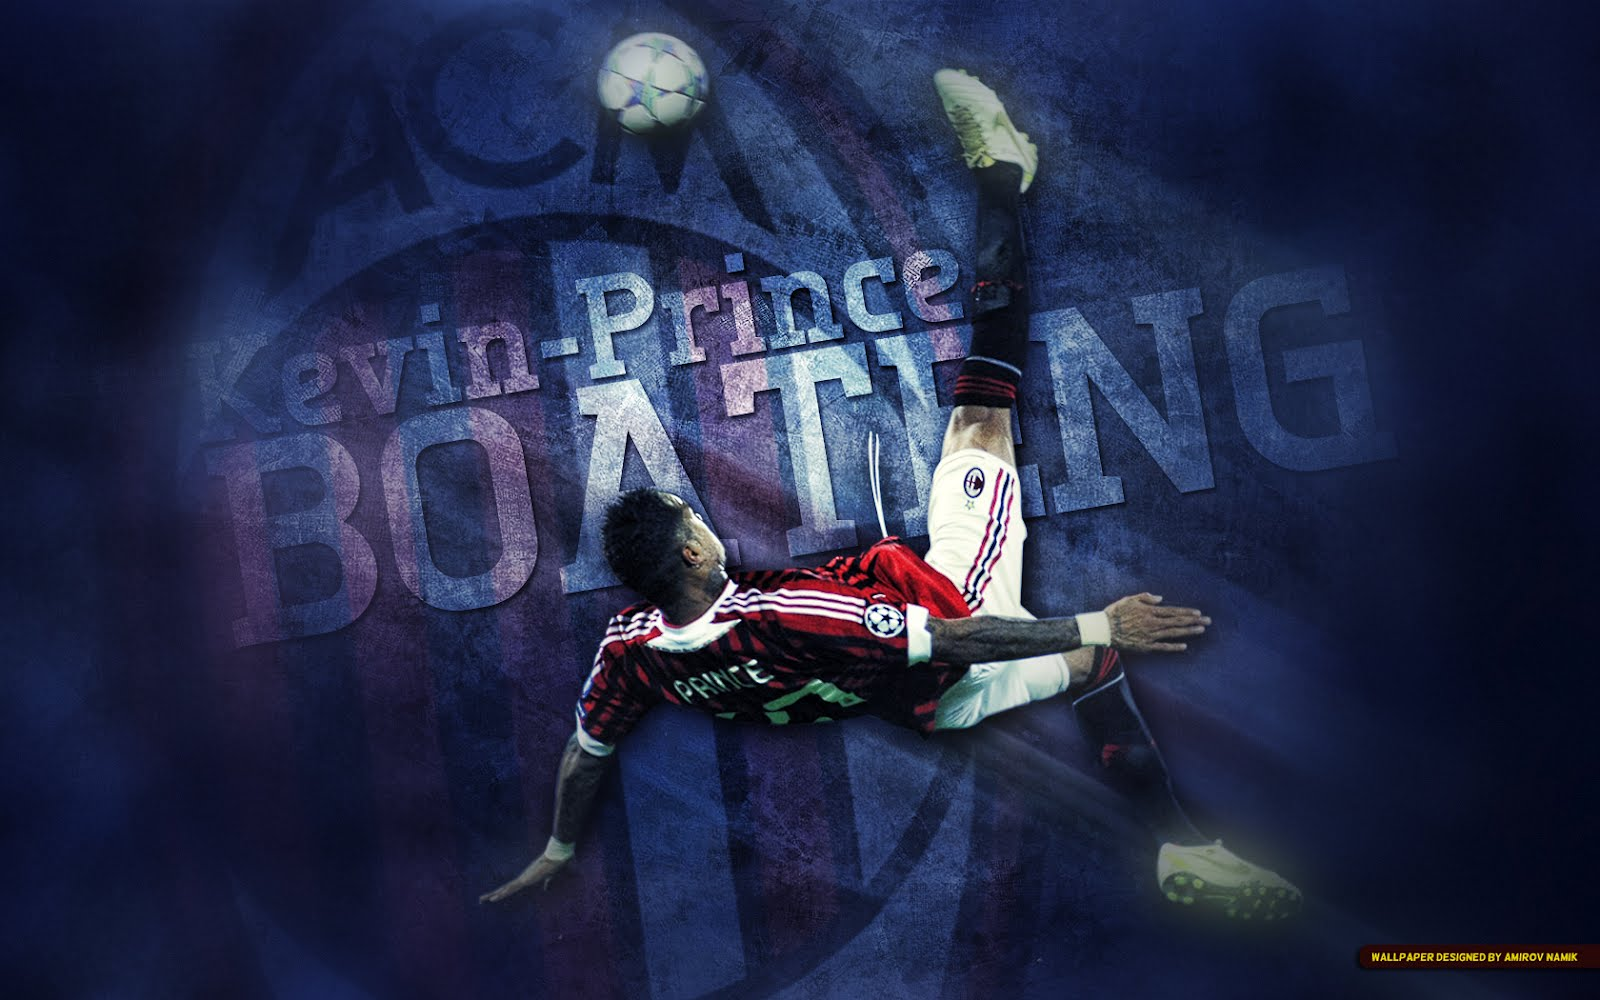 Prince Boateng Wallpaper Comic Clipart Downloads Mobile Phone Symbol 1600x1000